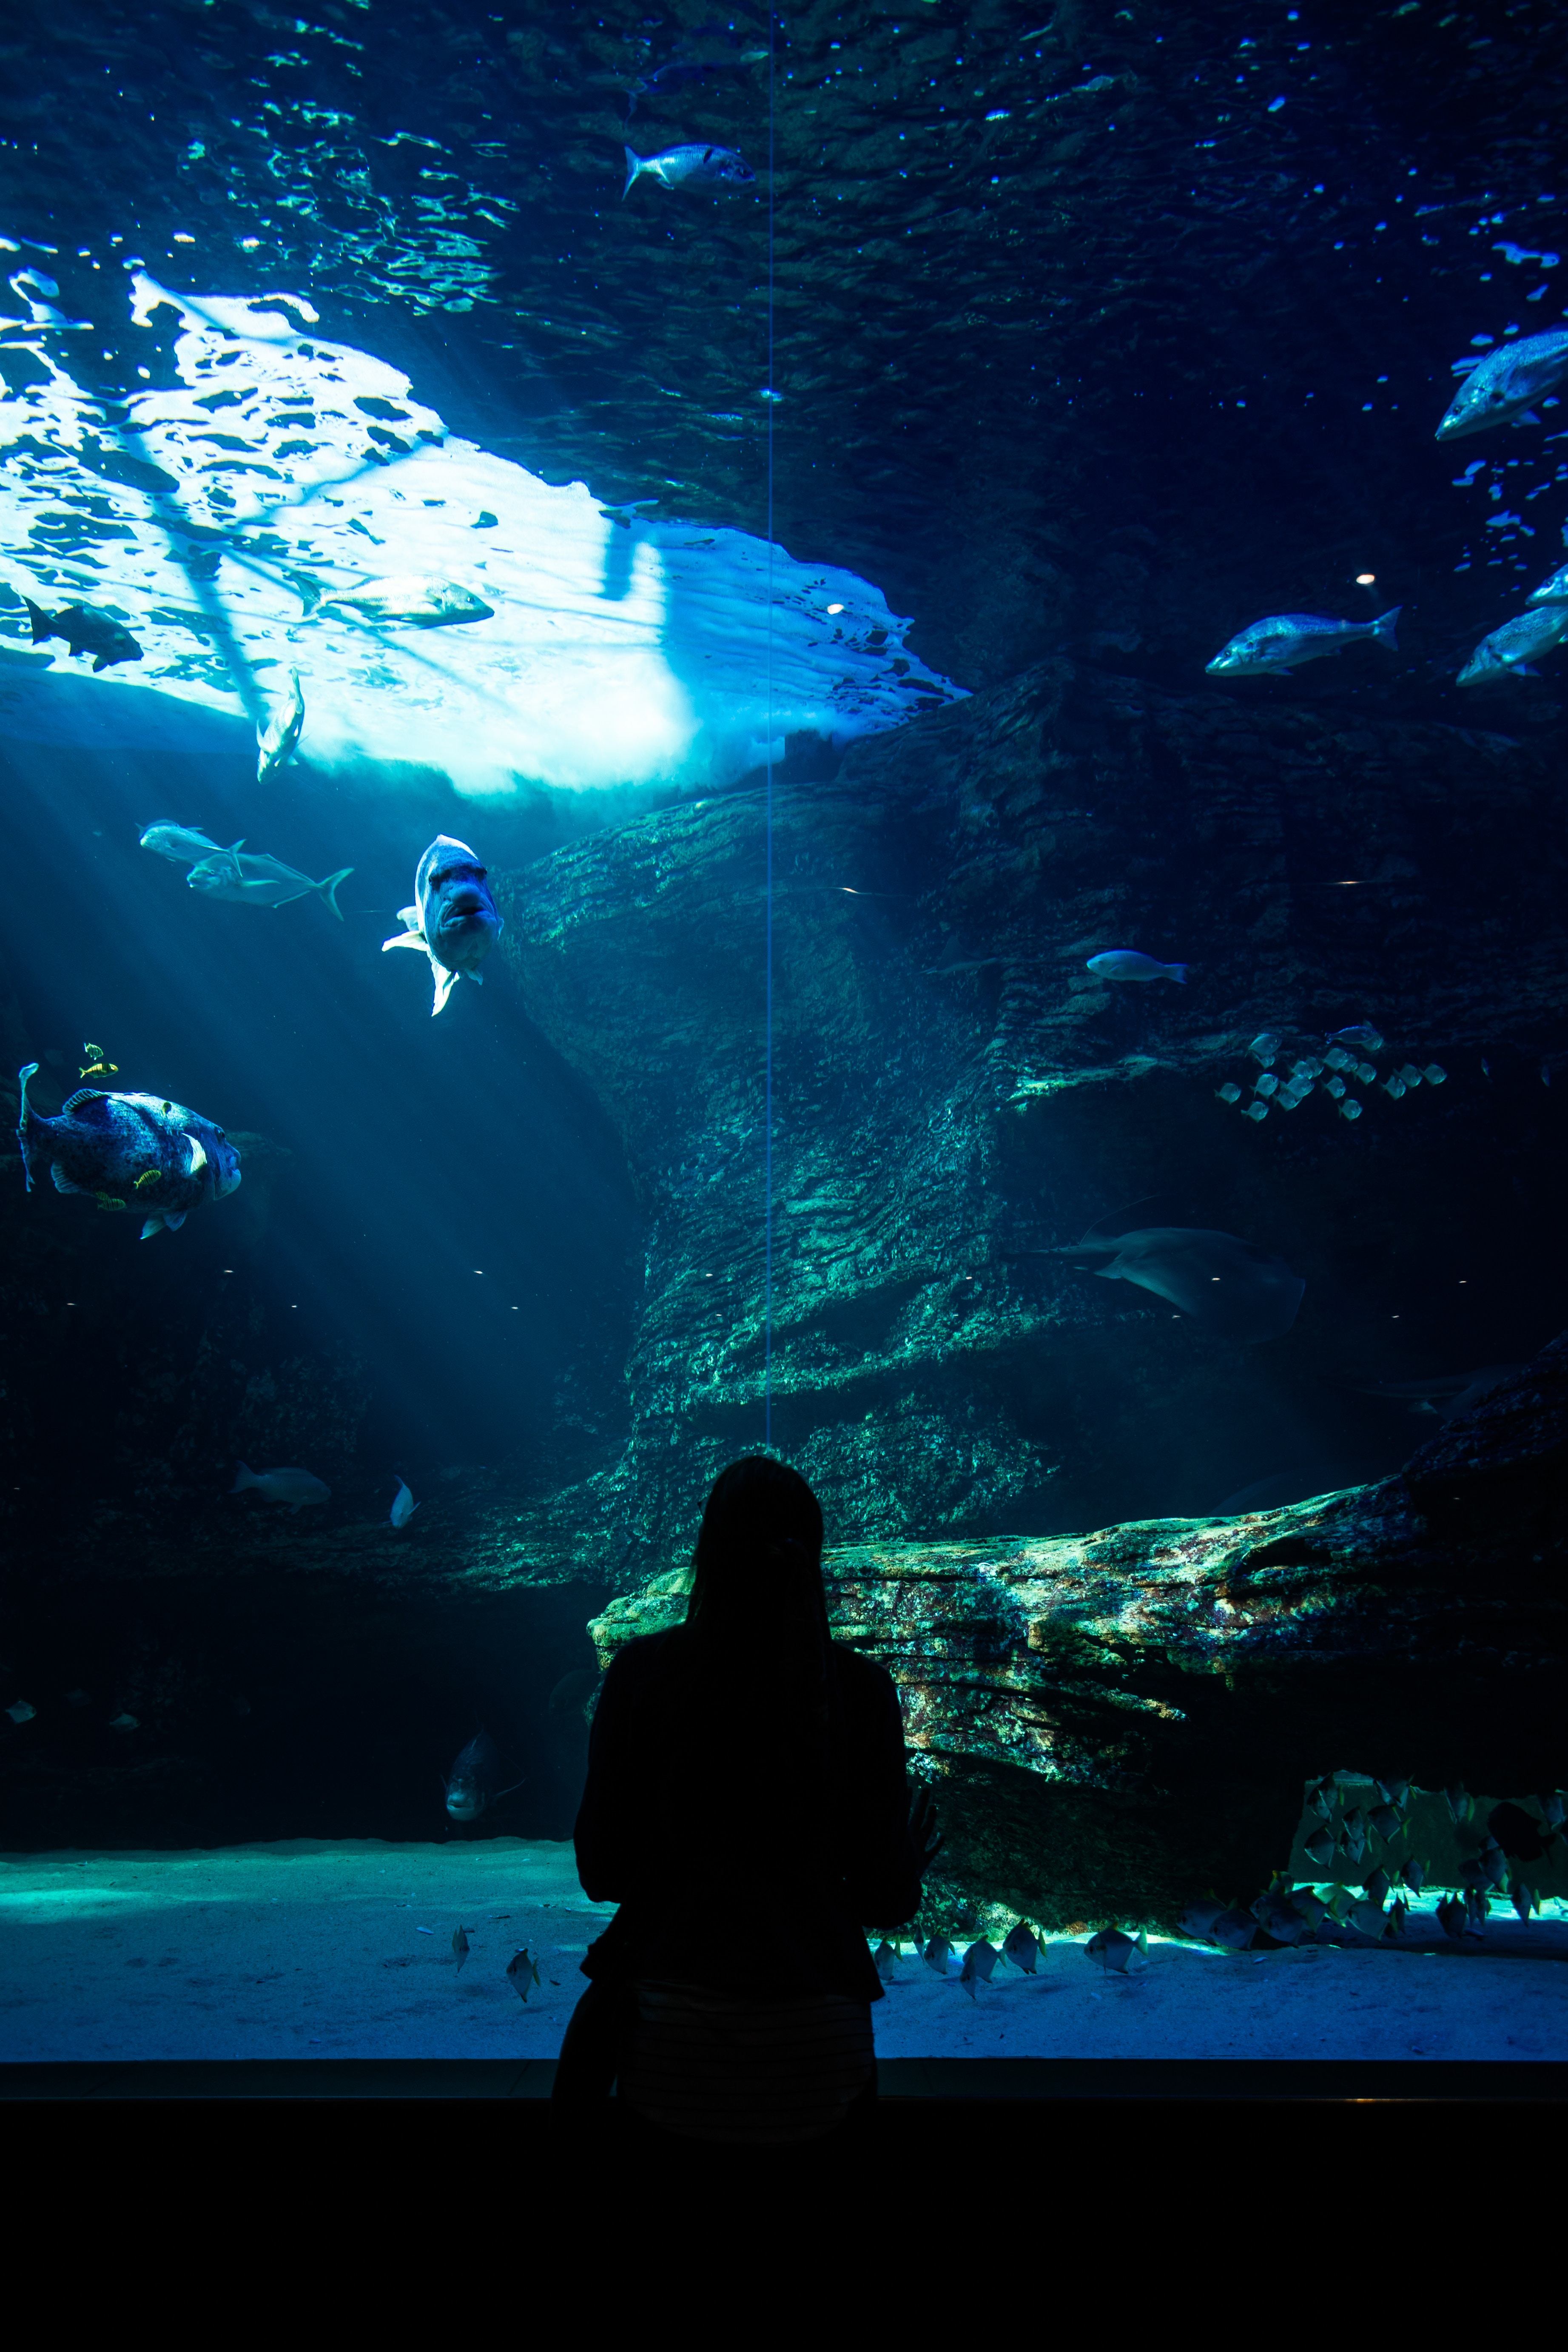 131160 download wallpaper Fishes, Dark, Silhouette, Underwater World, Aquarium screensavers and pictures for free